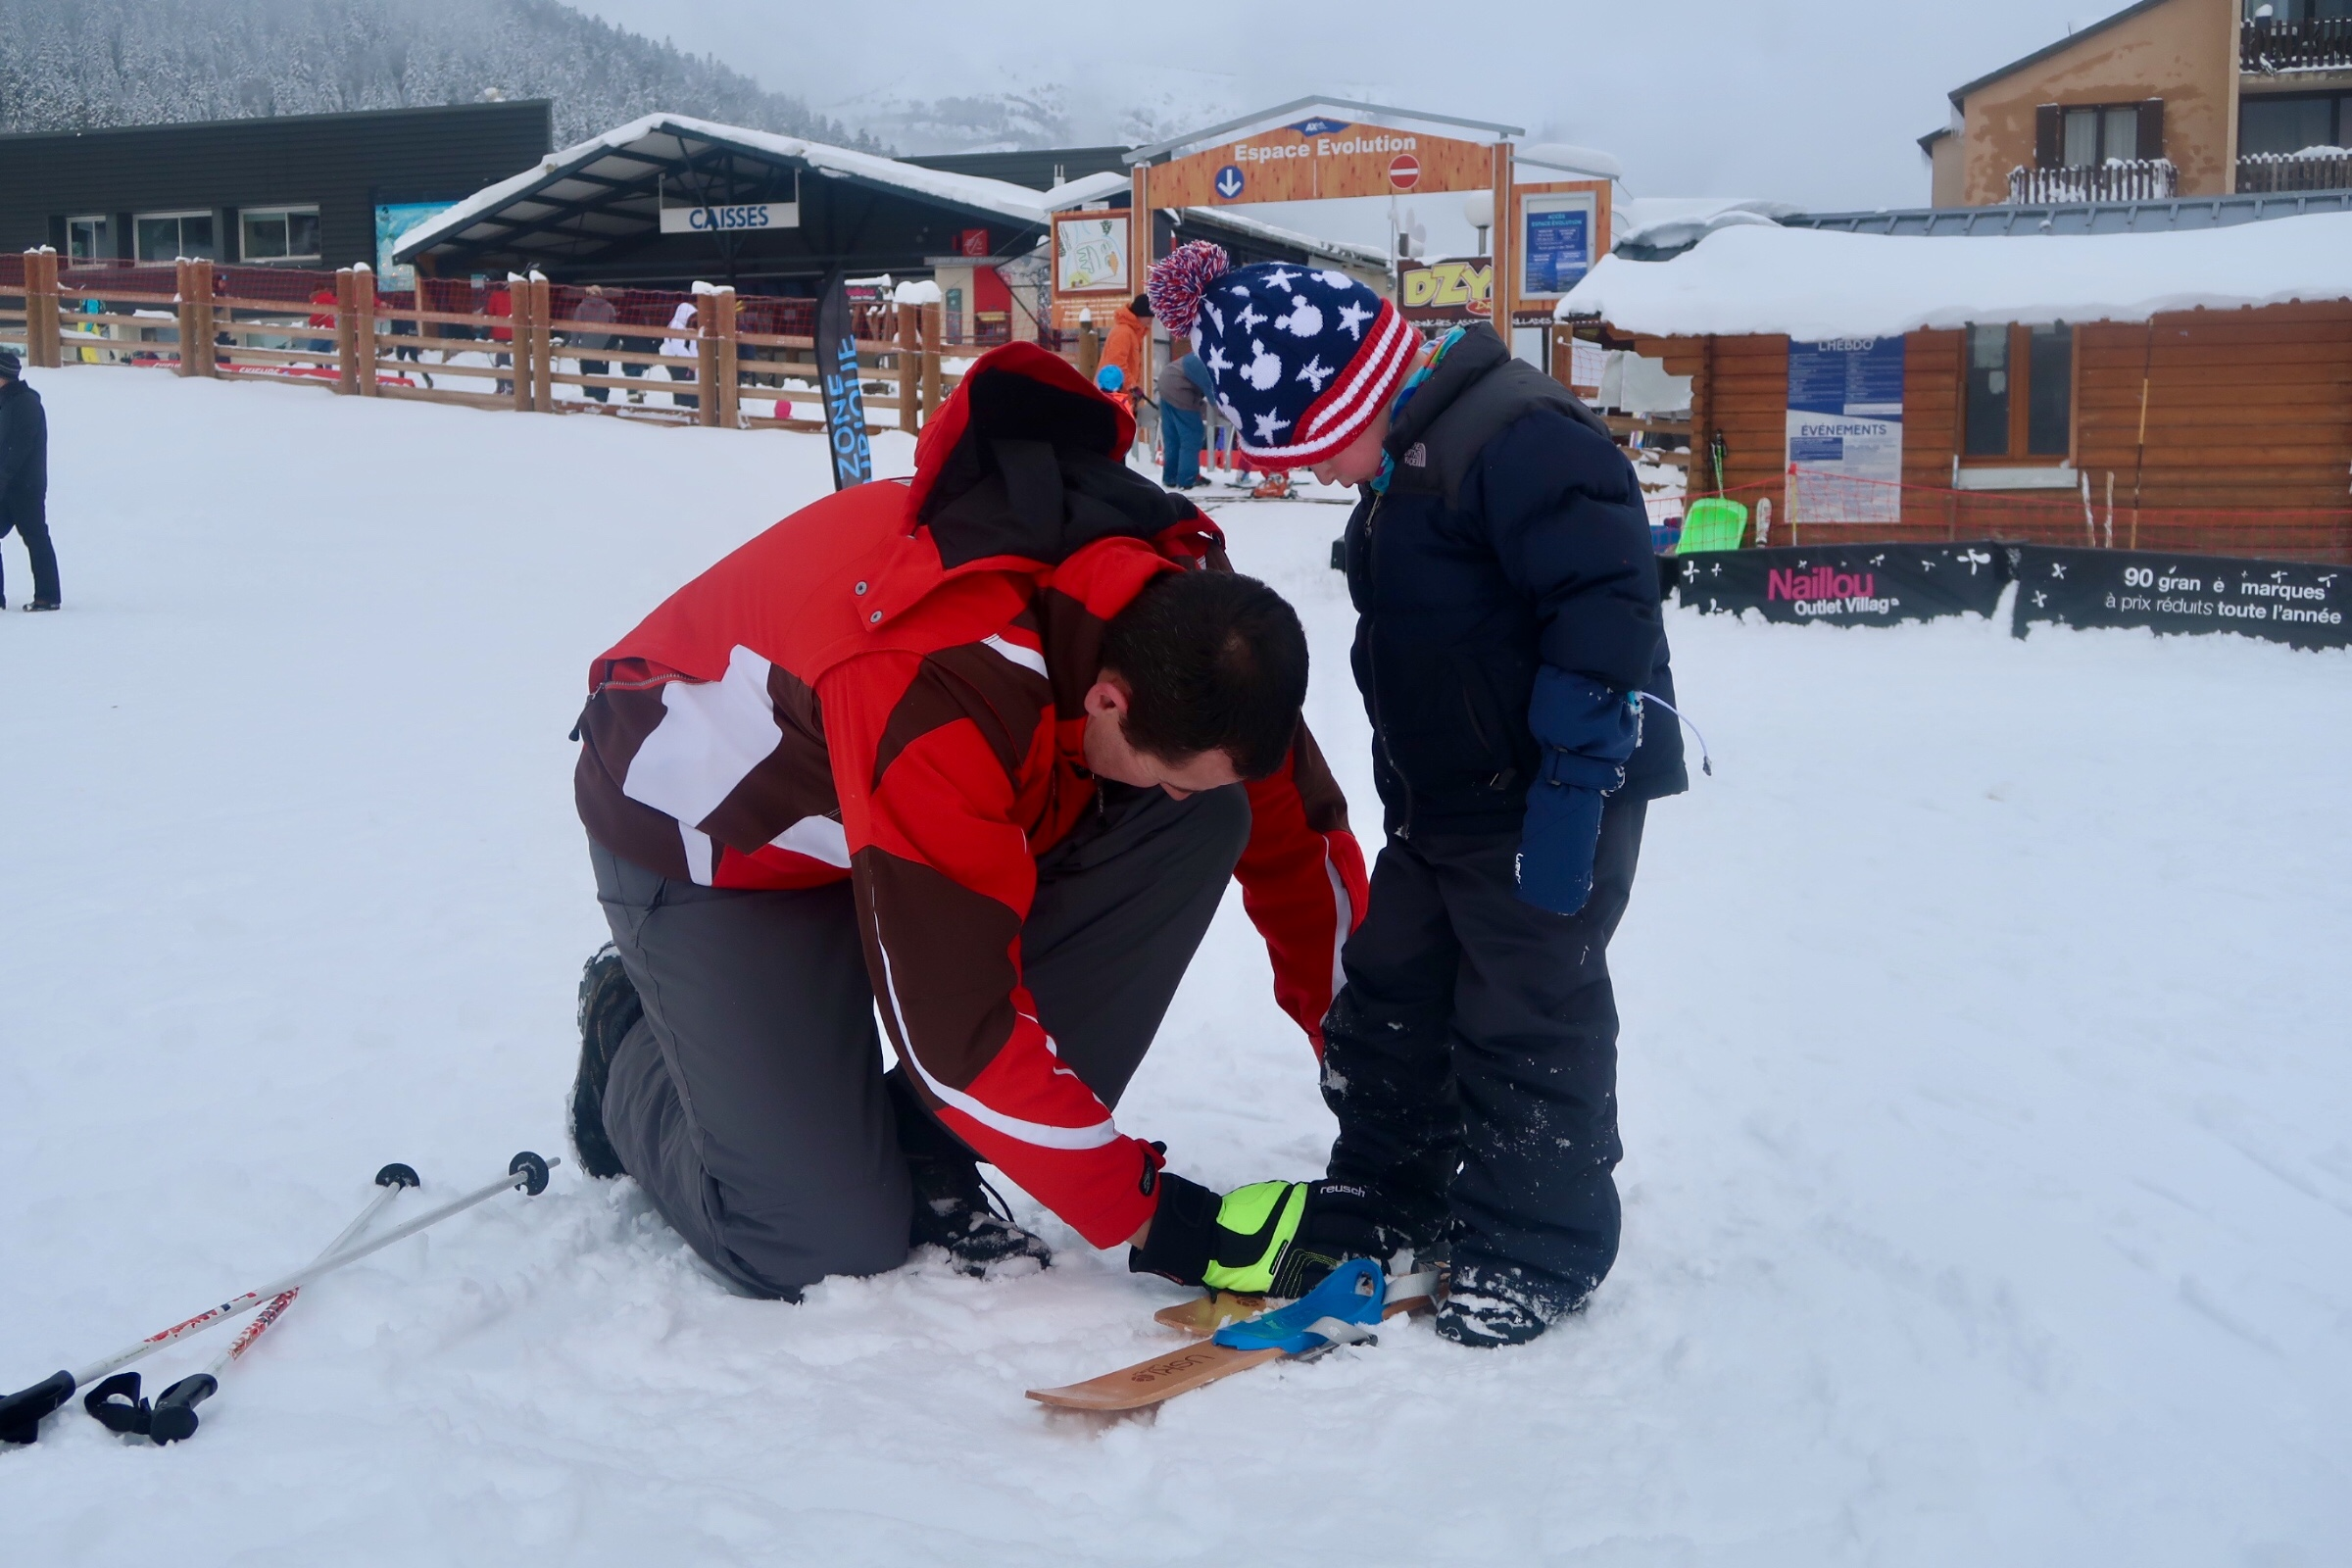 Strapping on his wooden skis for the first time